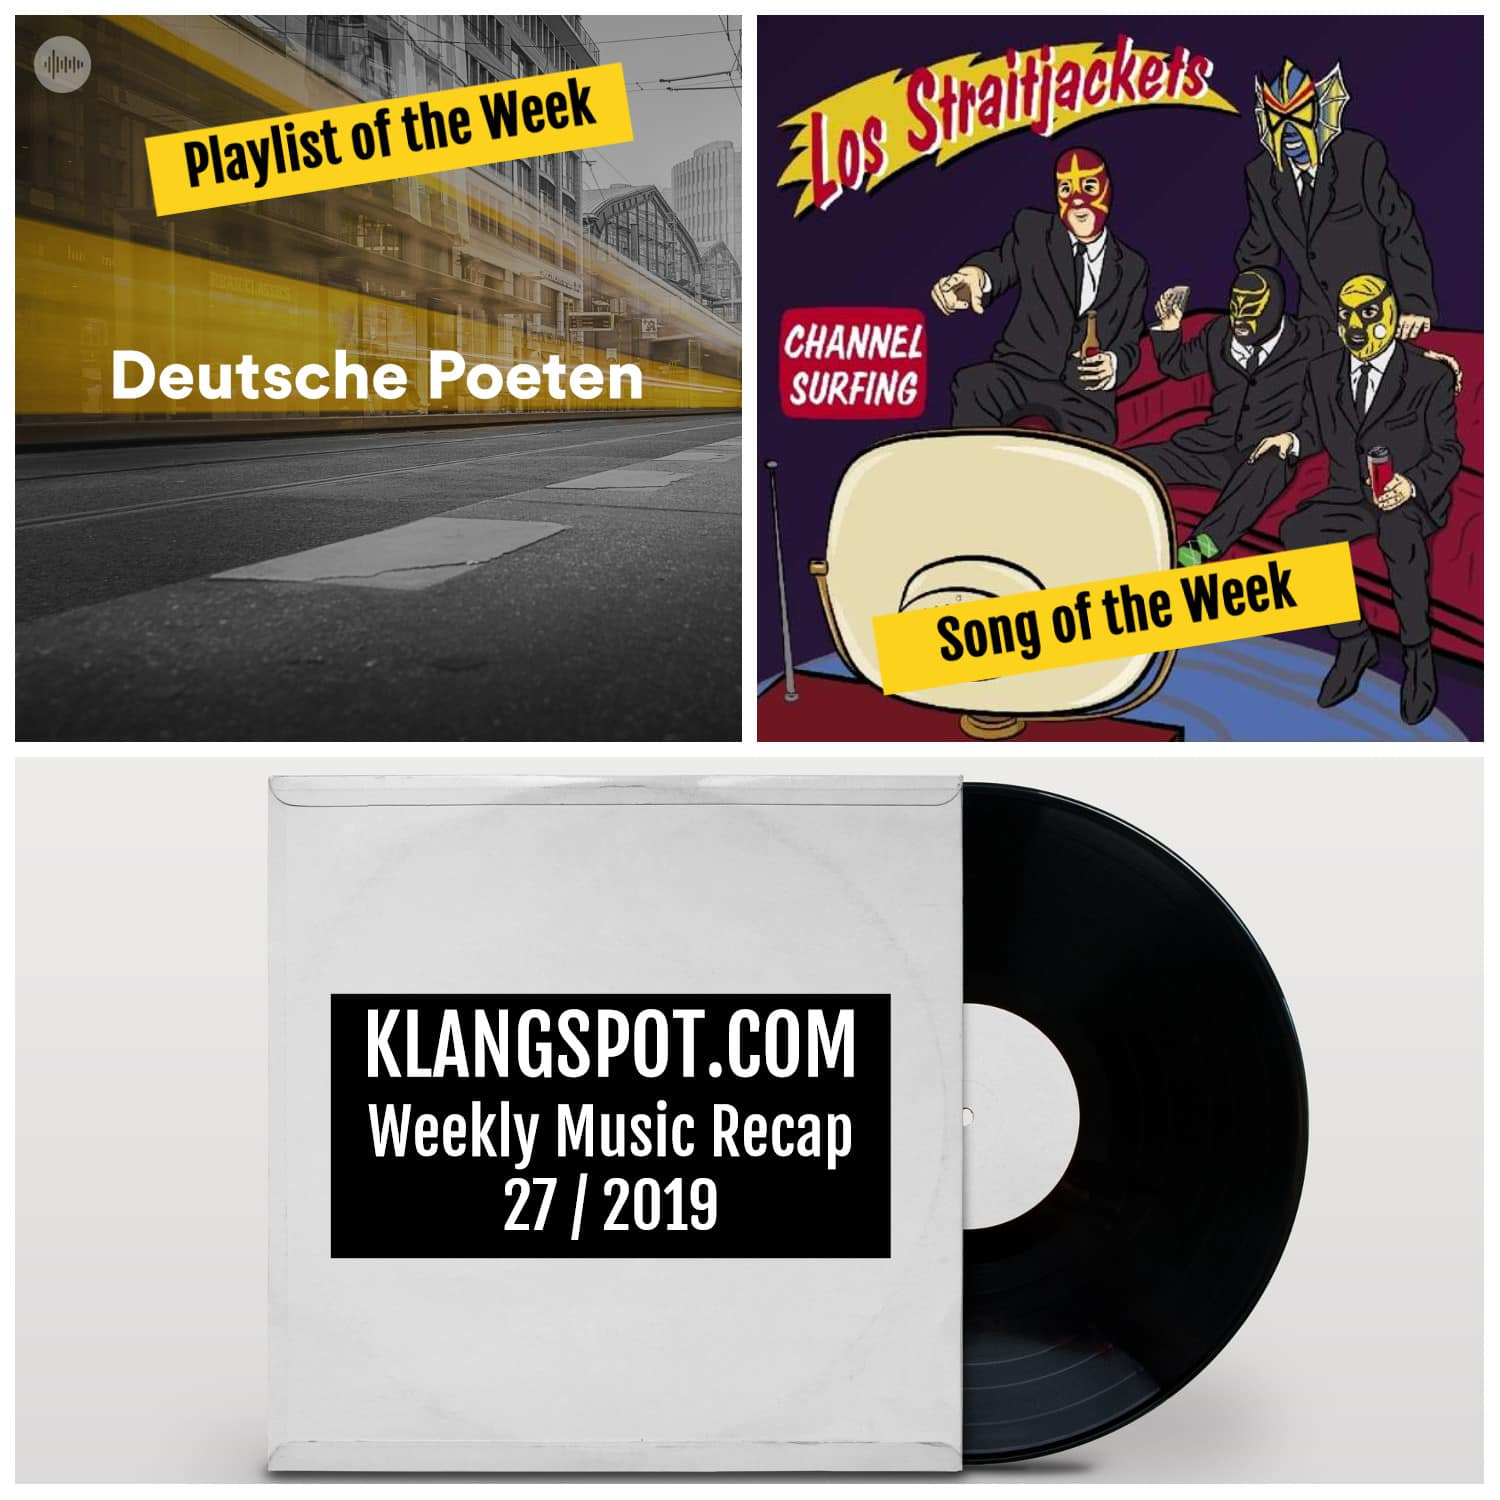 Weekly Music Recap 27/2019: Deutsche Poeten / Los Straitjackets - 'The Fishin' Hole'